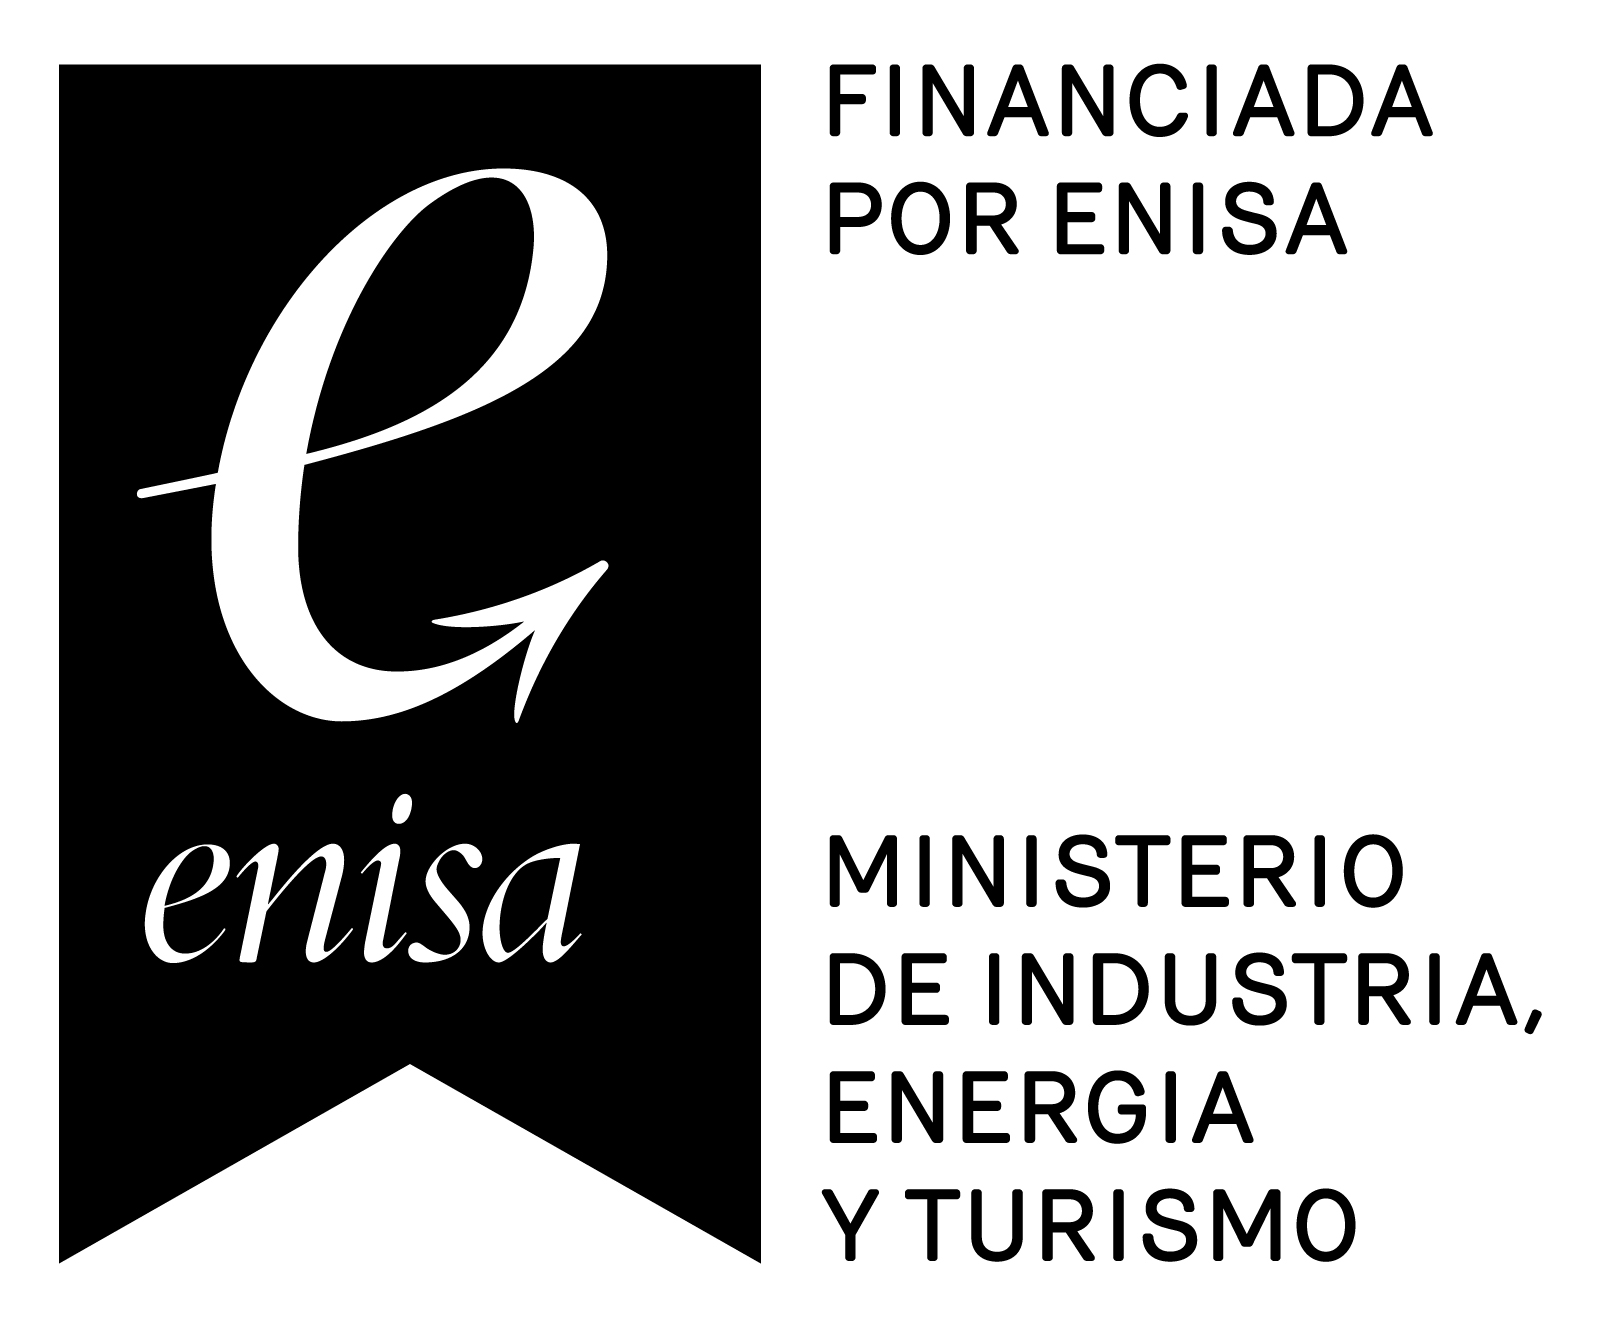 Financiada por Enisa